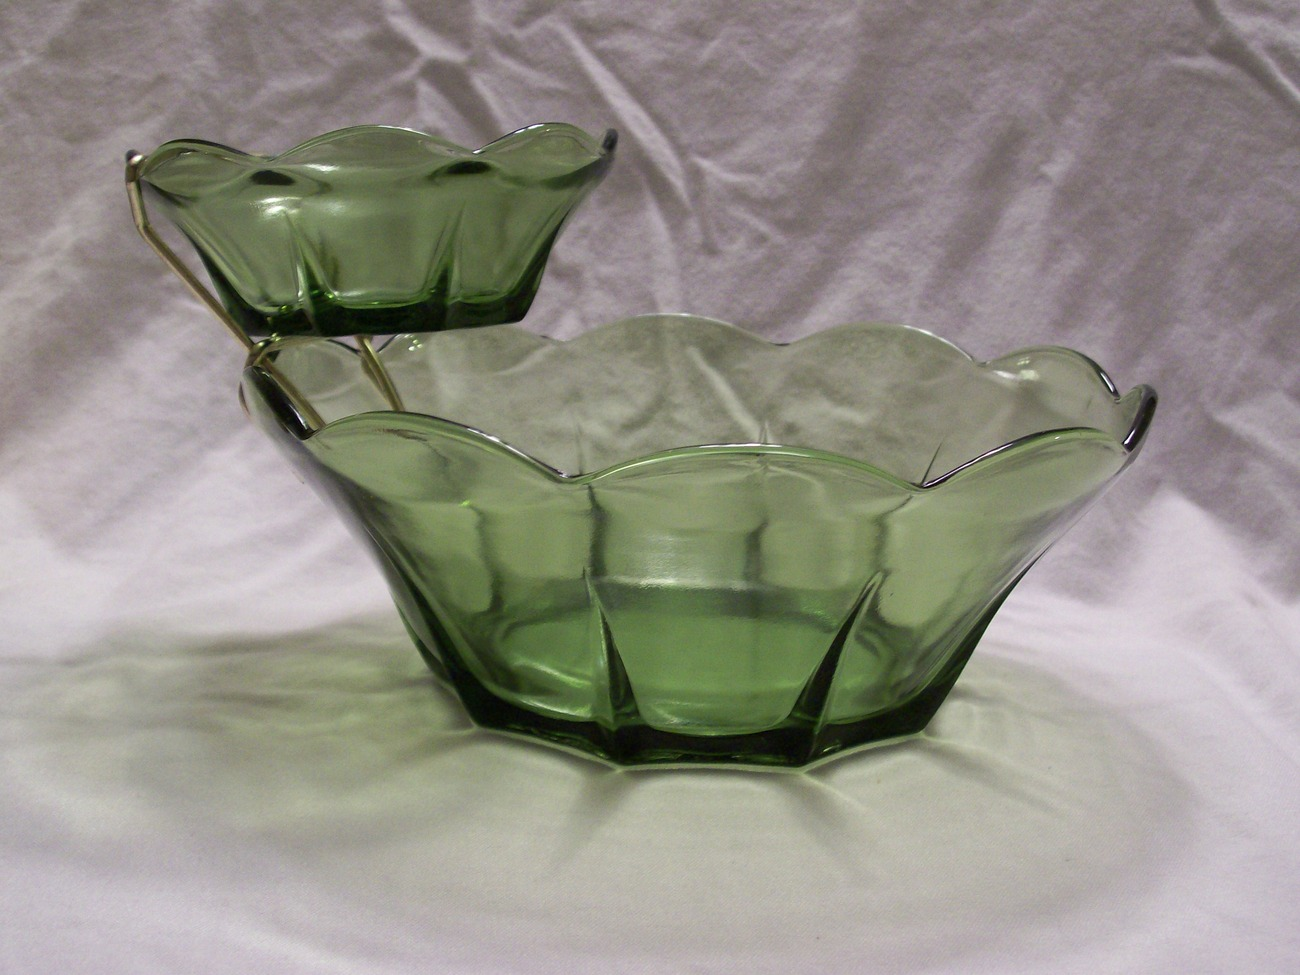 Vintage Anchor Hocking- 2 Tiered- 3 Pc Chip & Dip Set- Avocado Green w/Orig Box  image 5